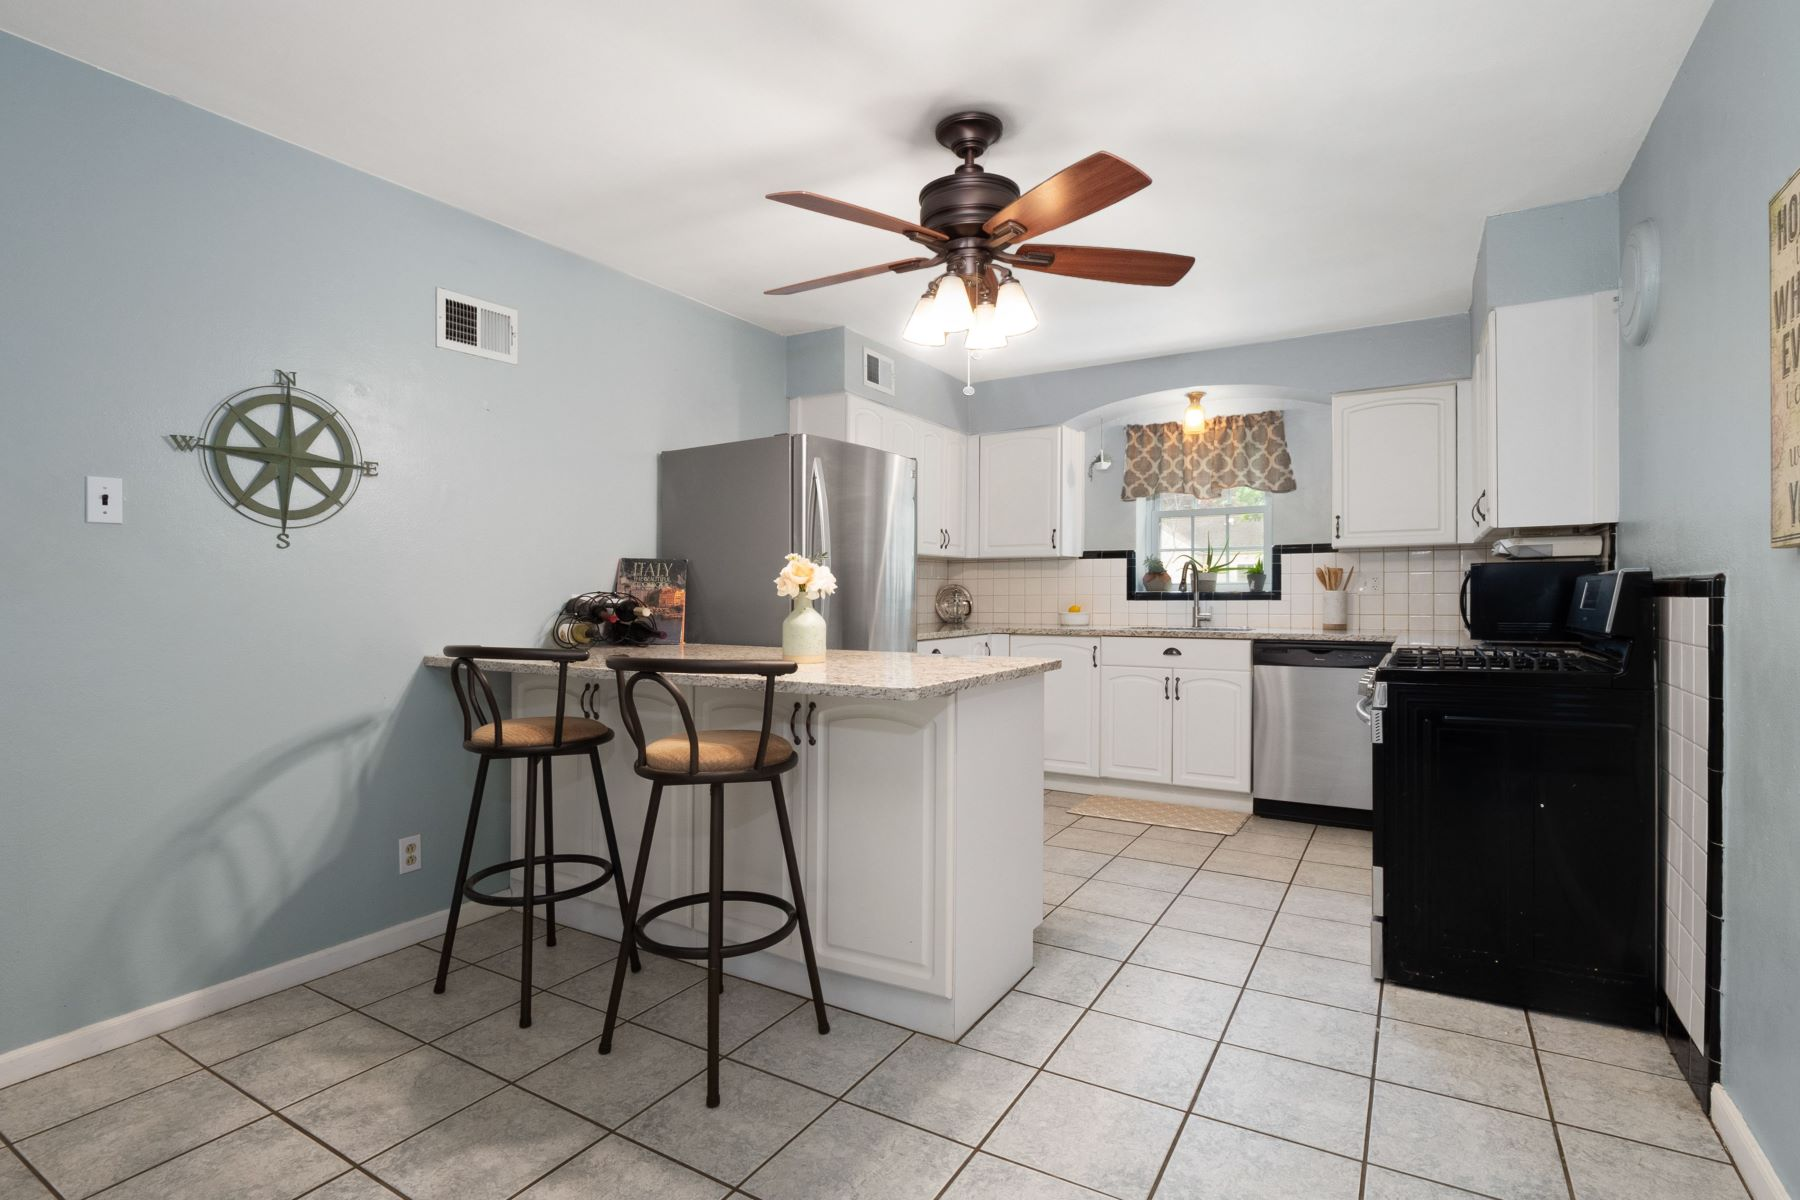 Additional photo for property listing at Meticulously Maintained Brick Ranch 9912 Berwick Drive Affton, Missouri 63123 United States